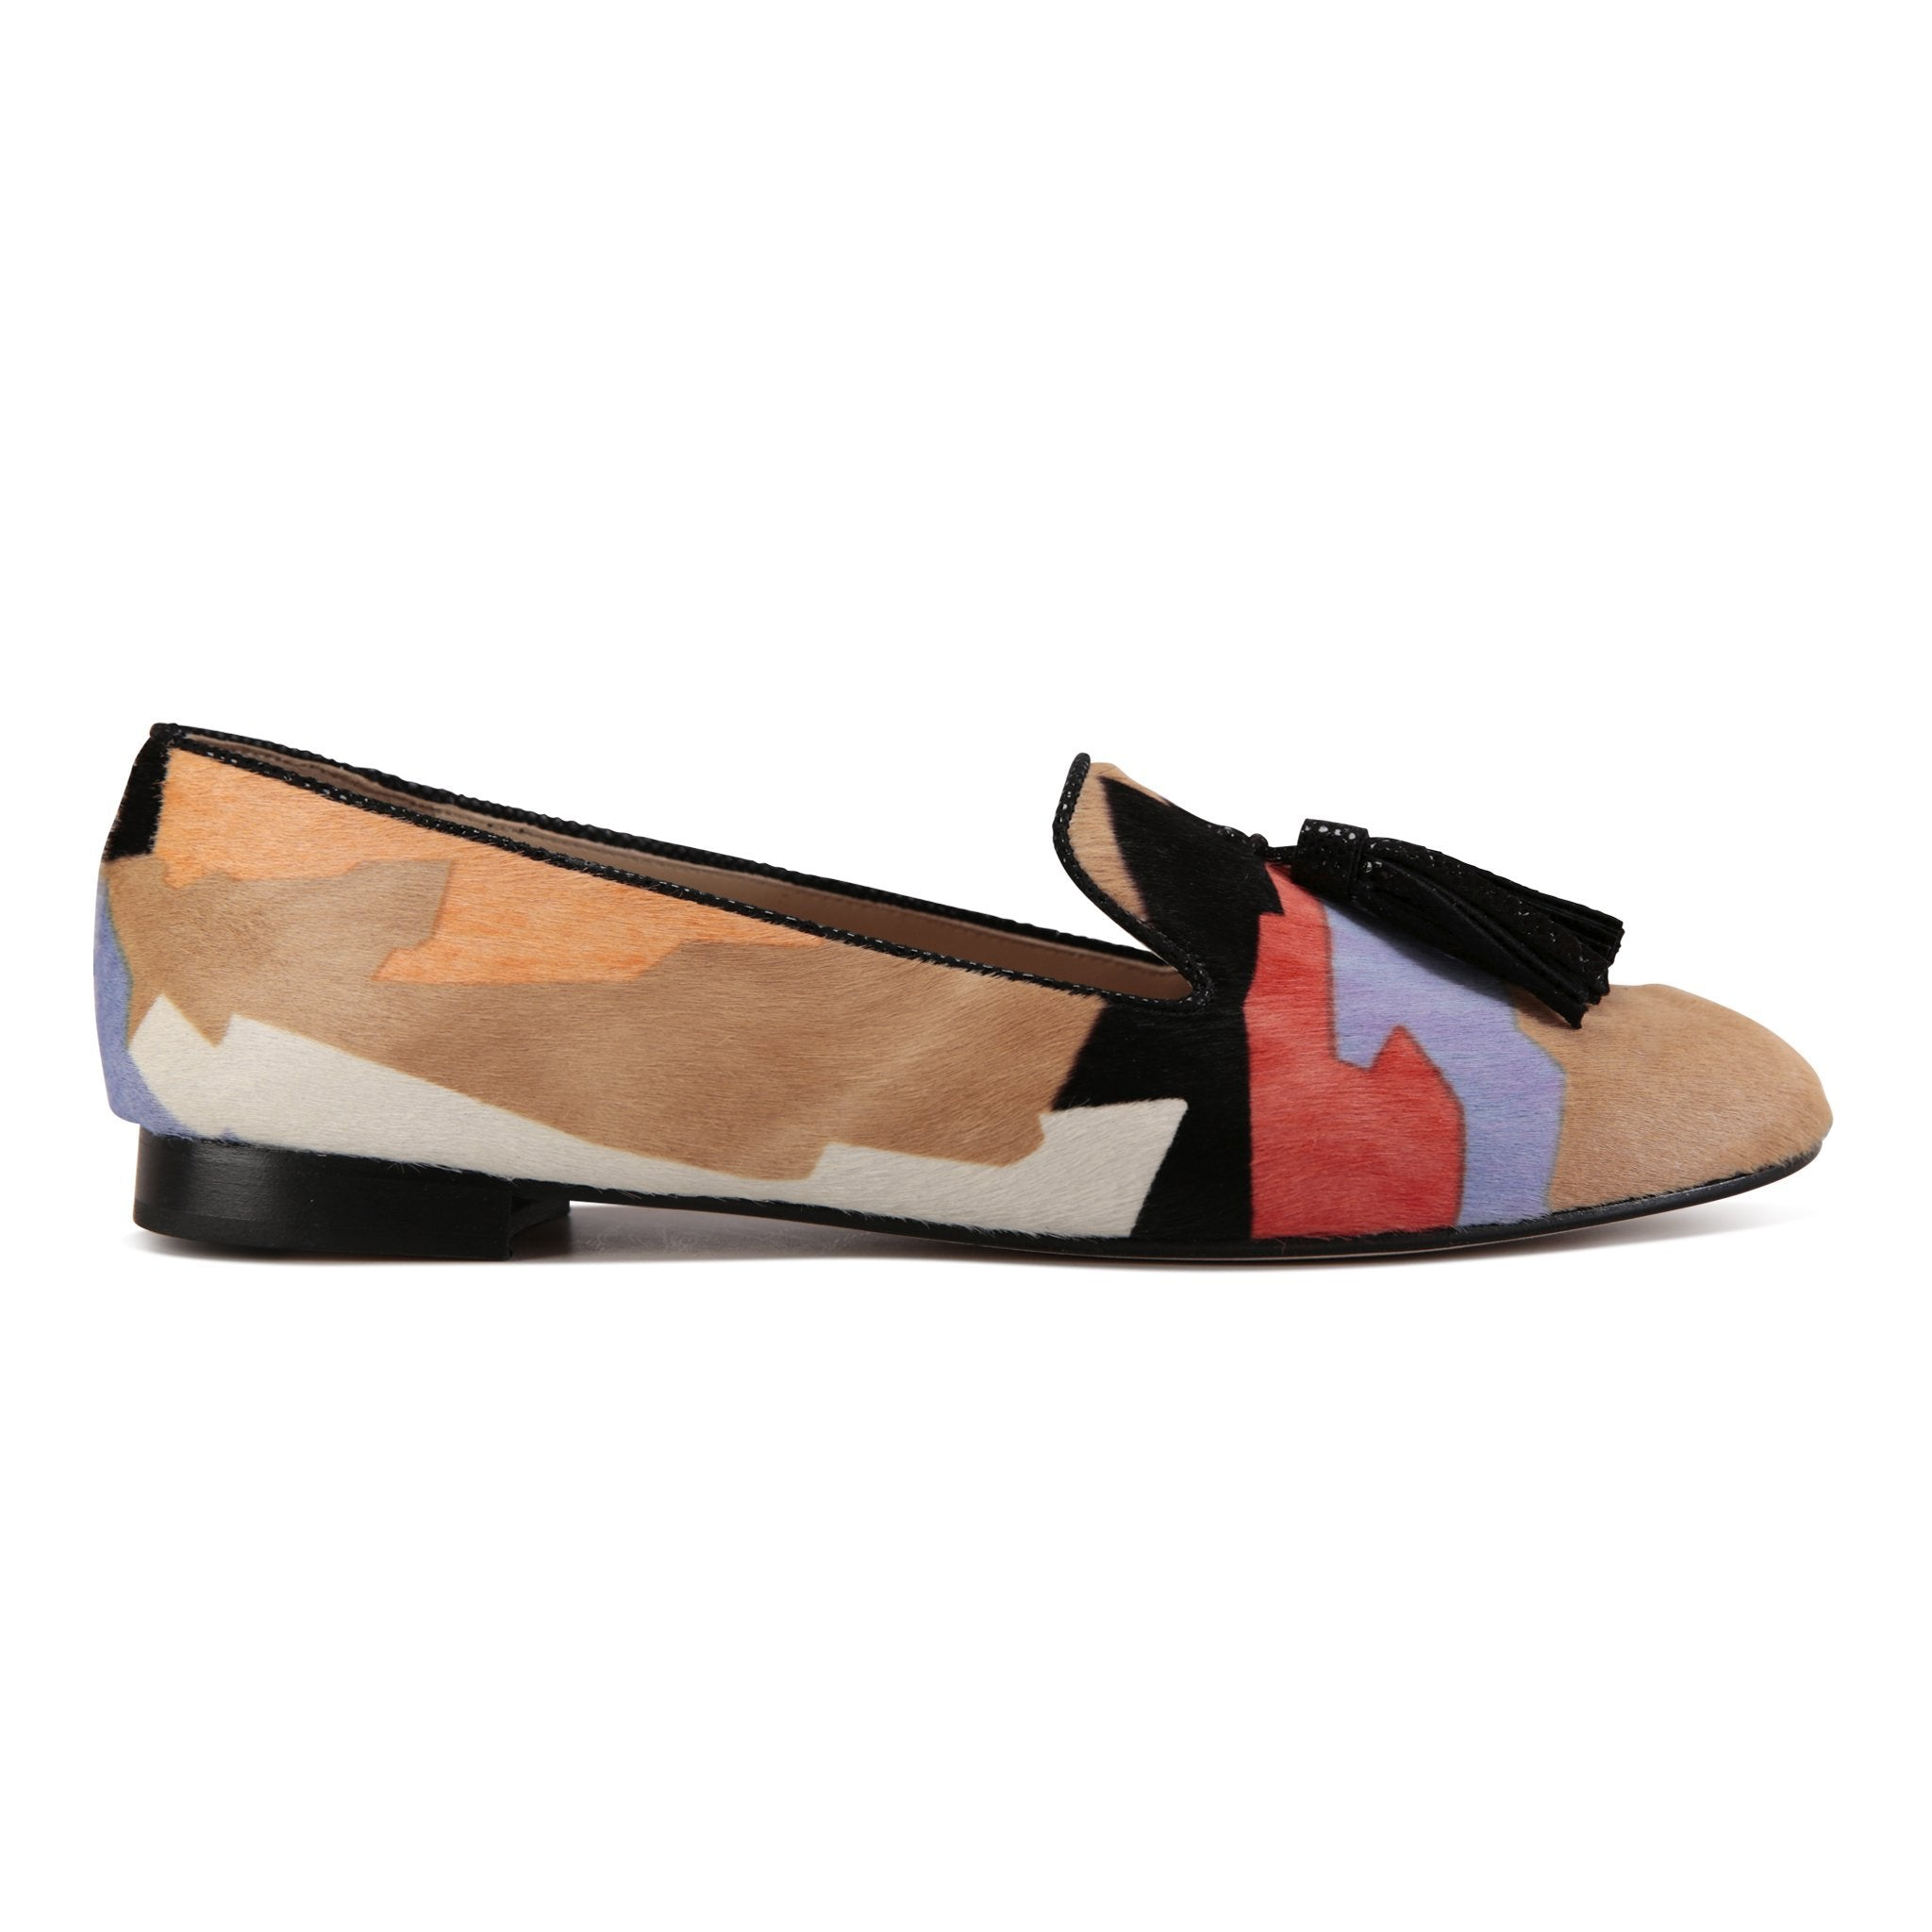 PARMA - Calf Hair Rio II + Karung Nero, VIAJIYU - Women's Hand Made Sustainable Luxury Shoes. Made in Italy. Made to Order.